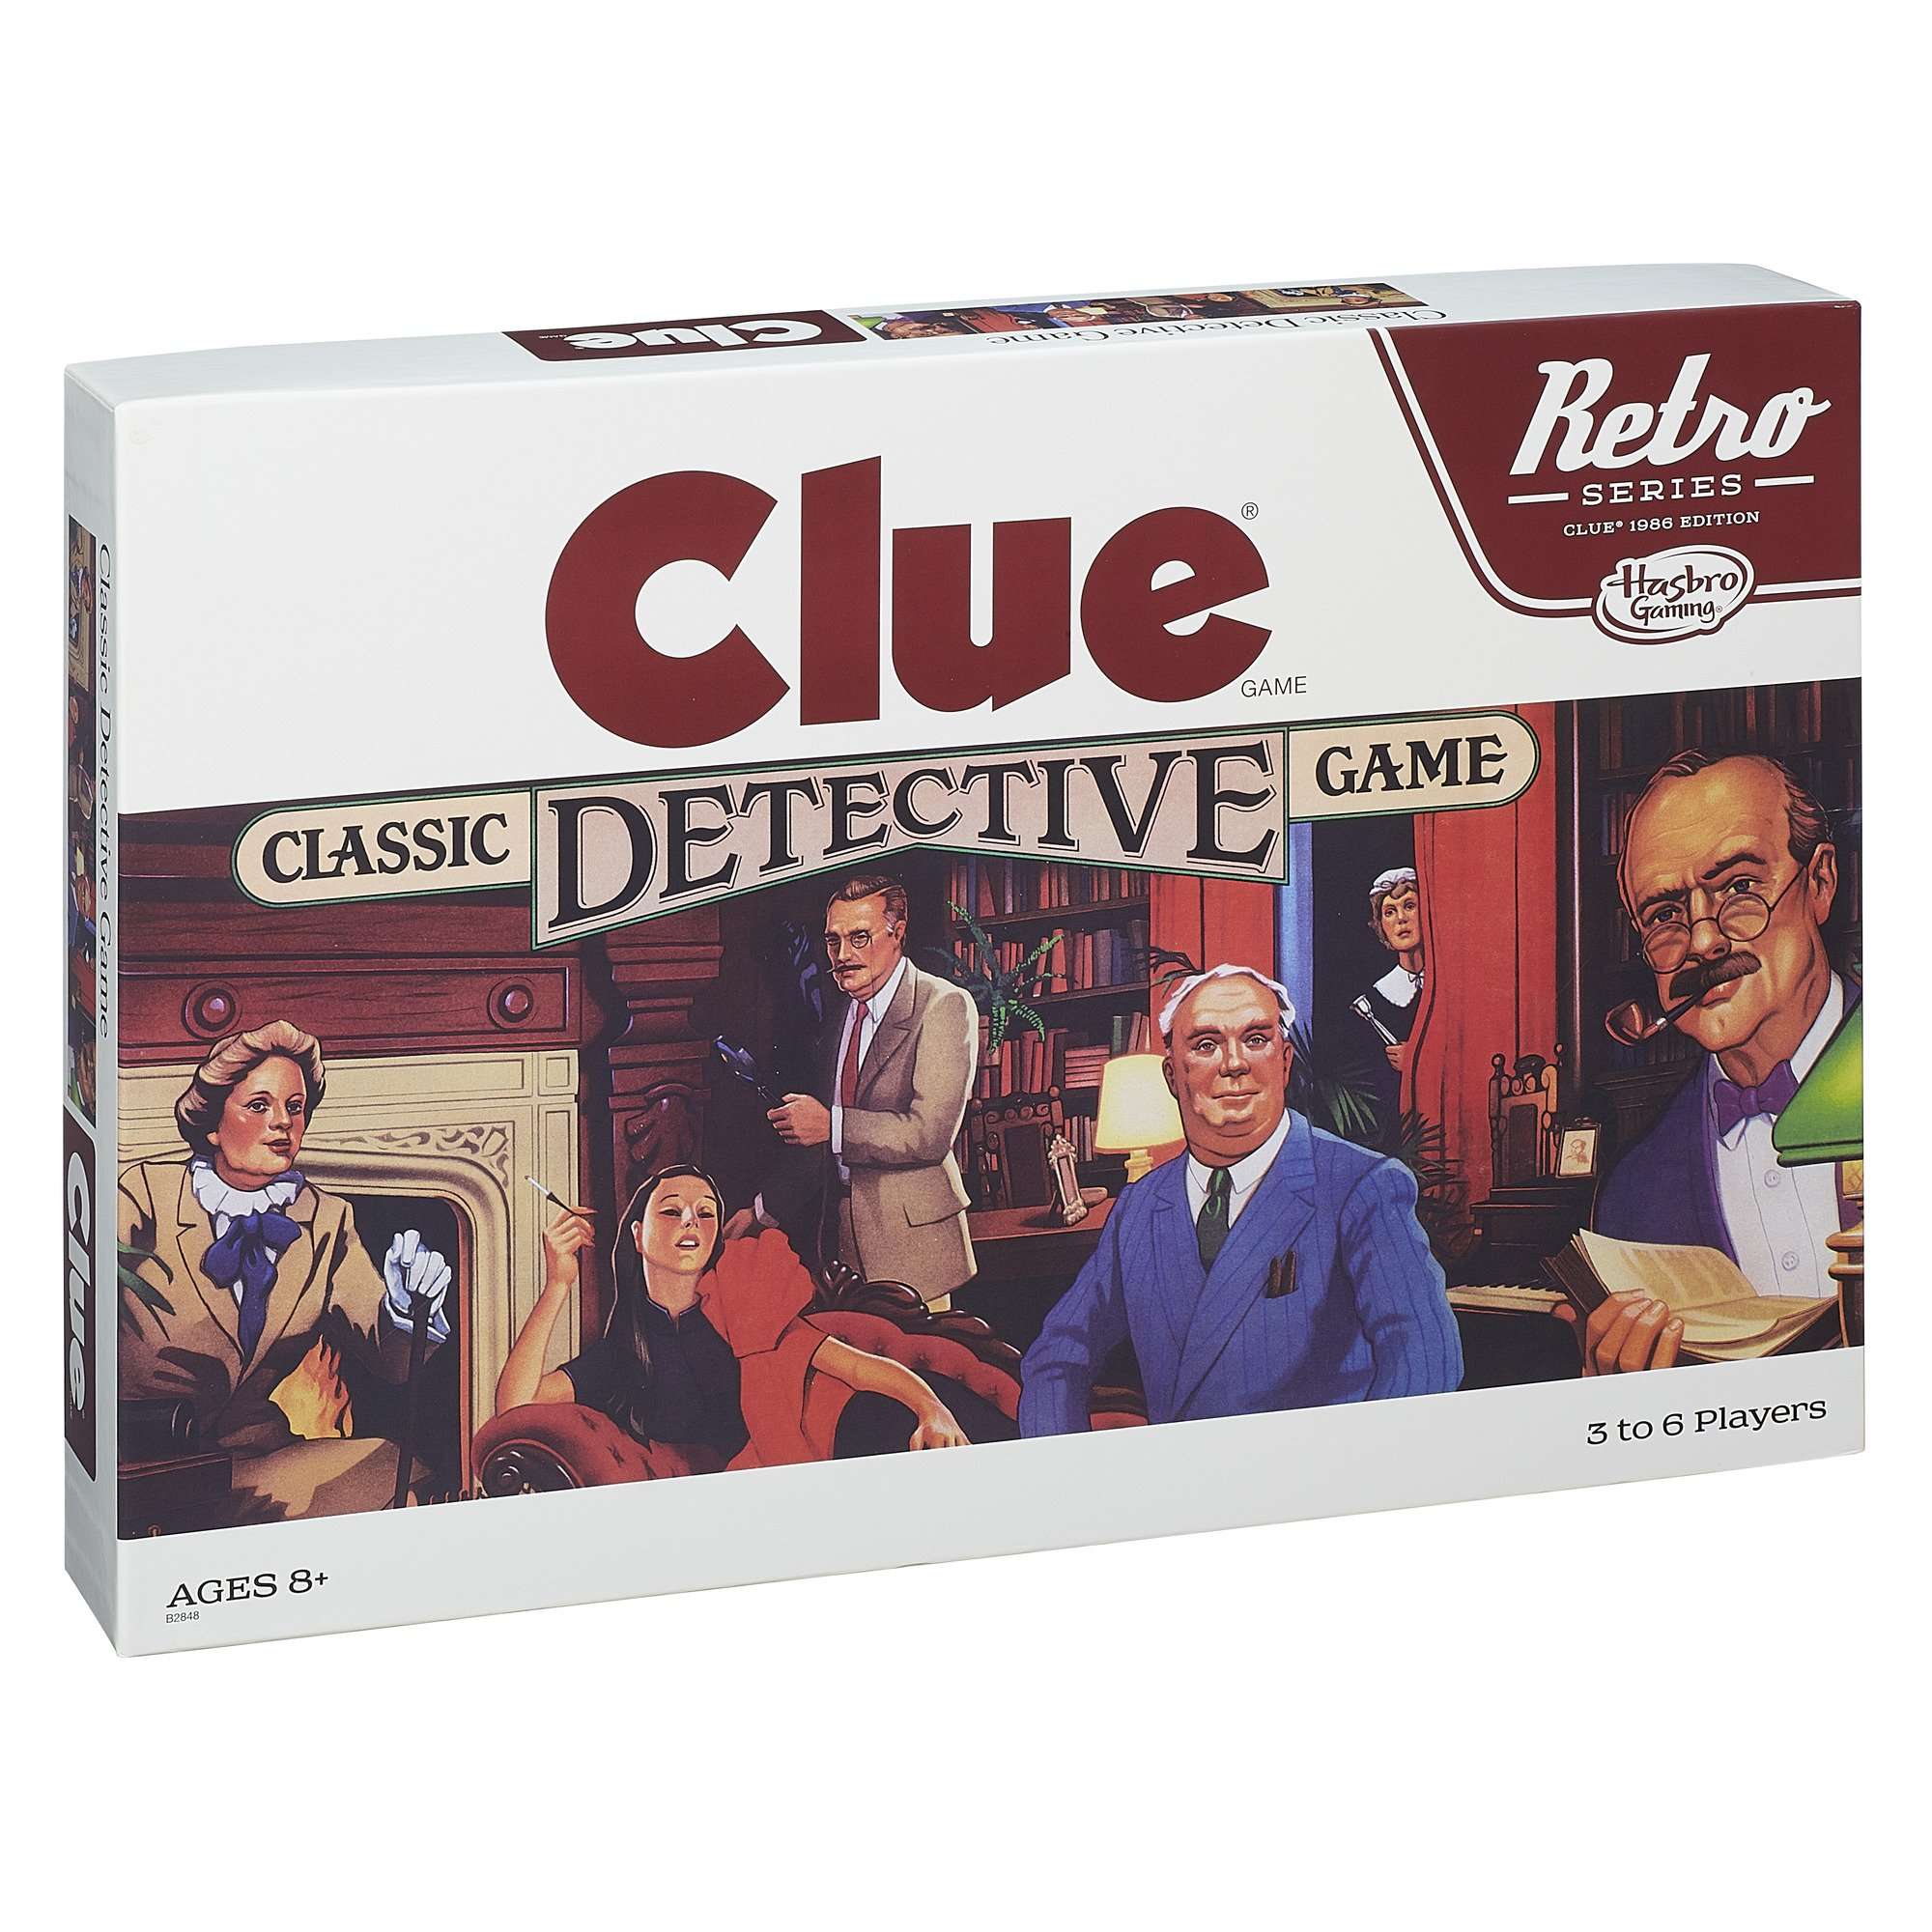 Retro Series Clue 1986 Edition Game by Hasbro (Image #3)